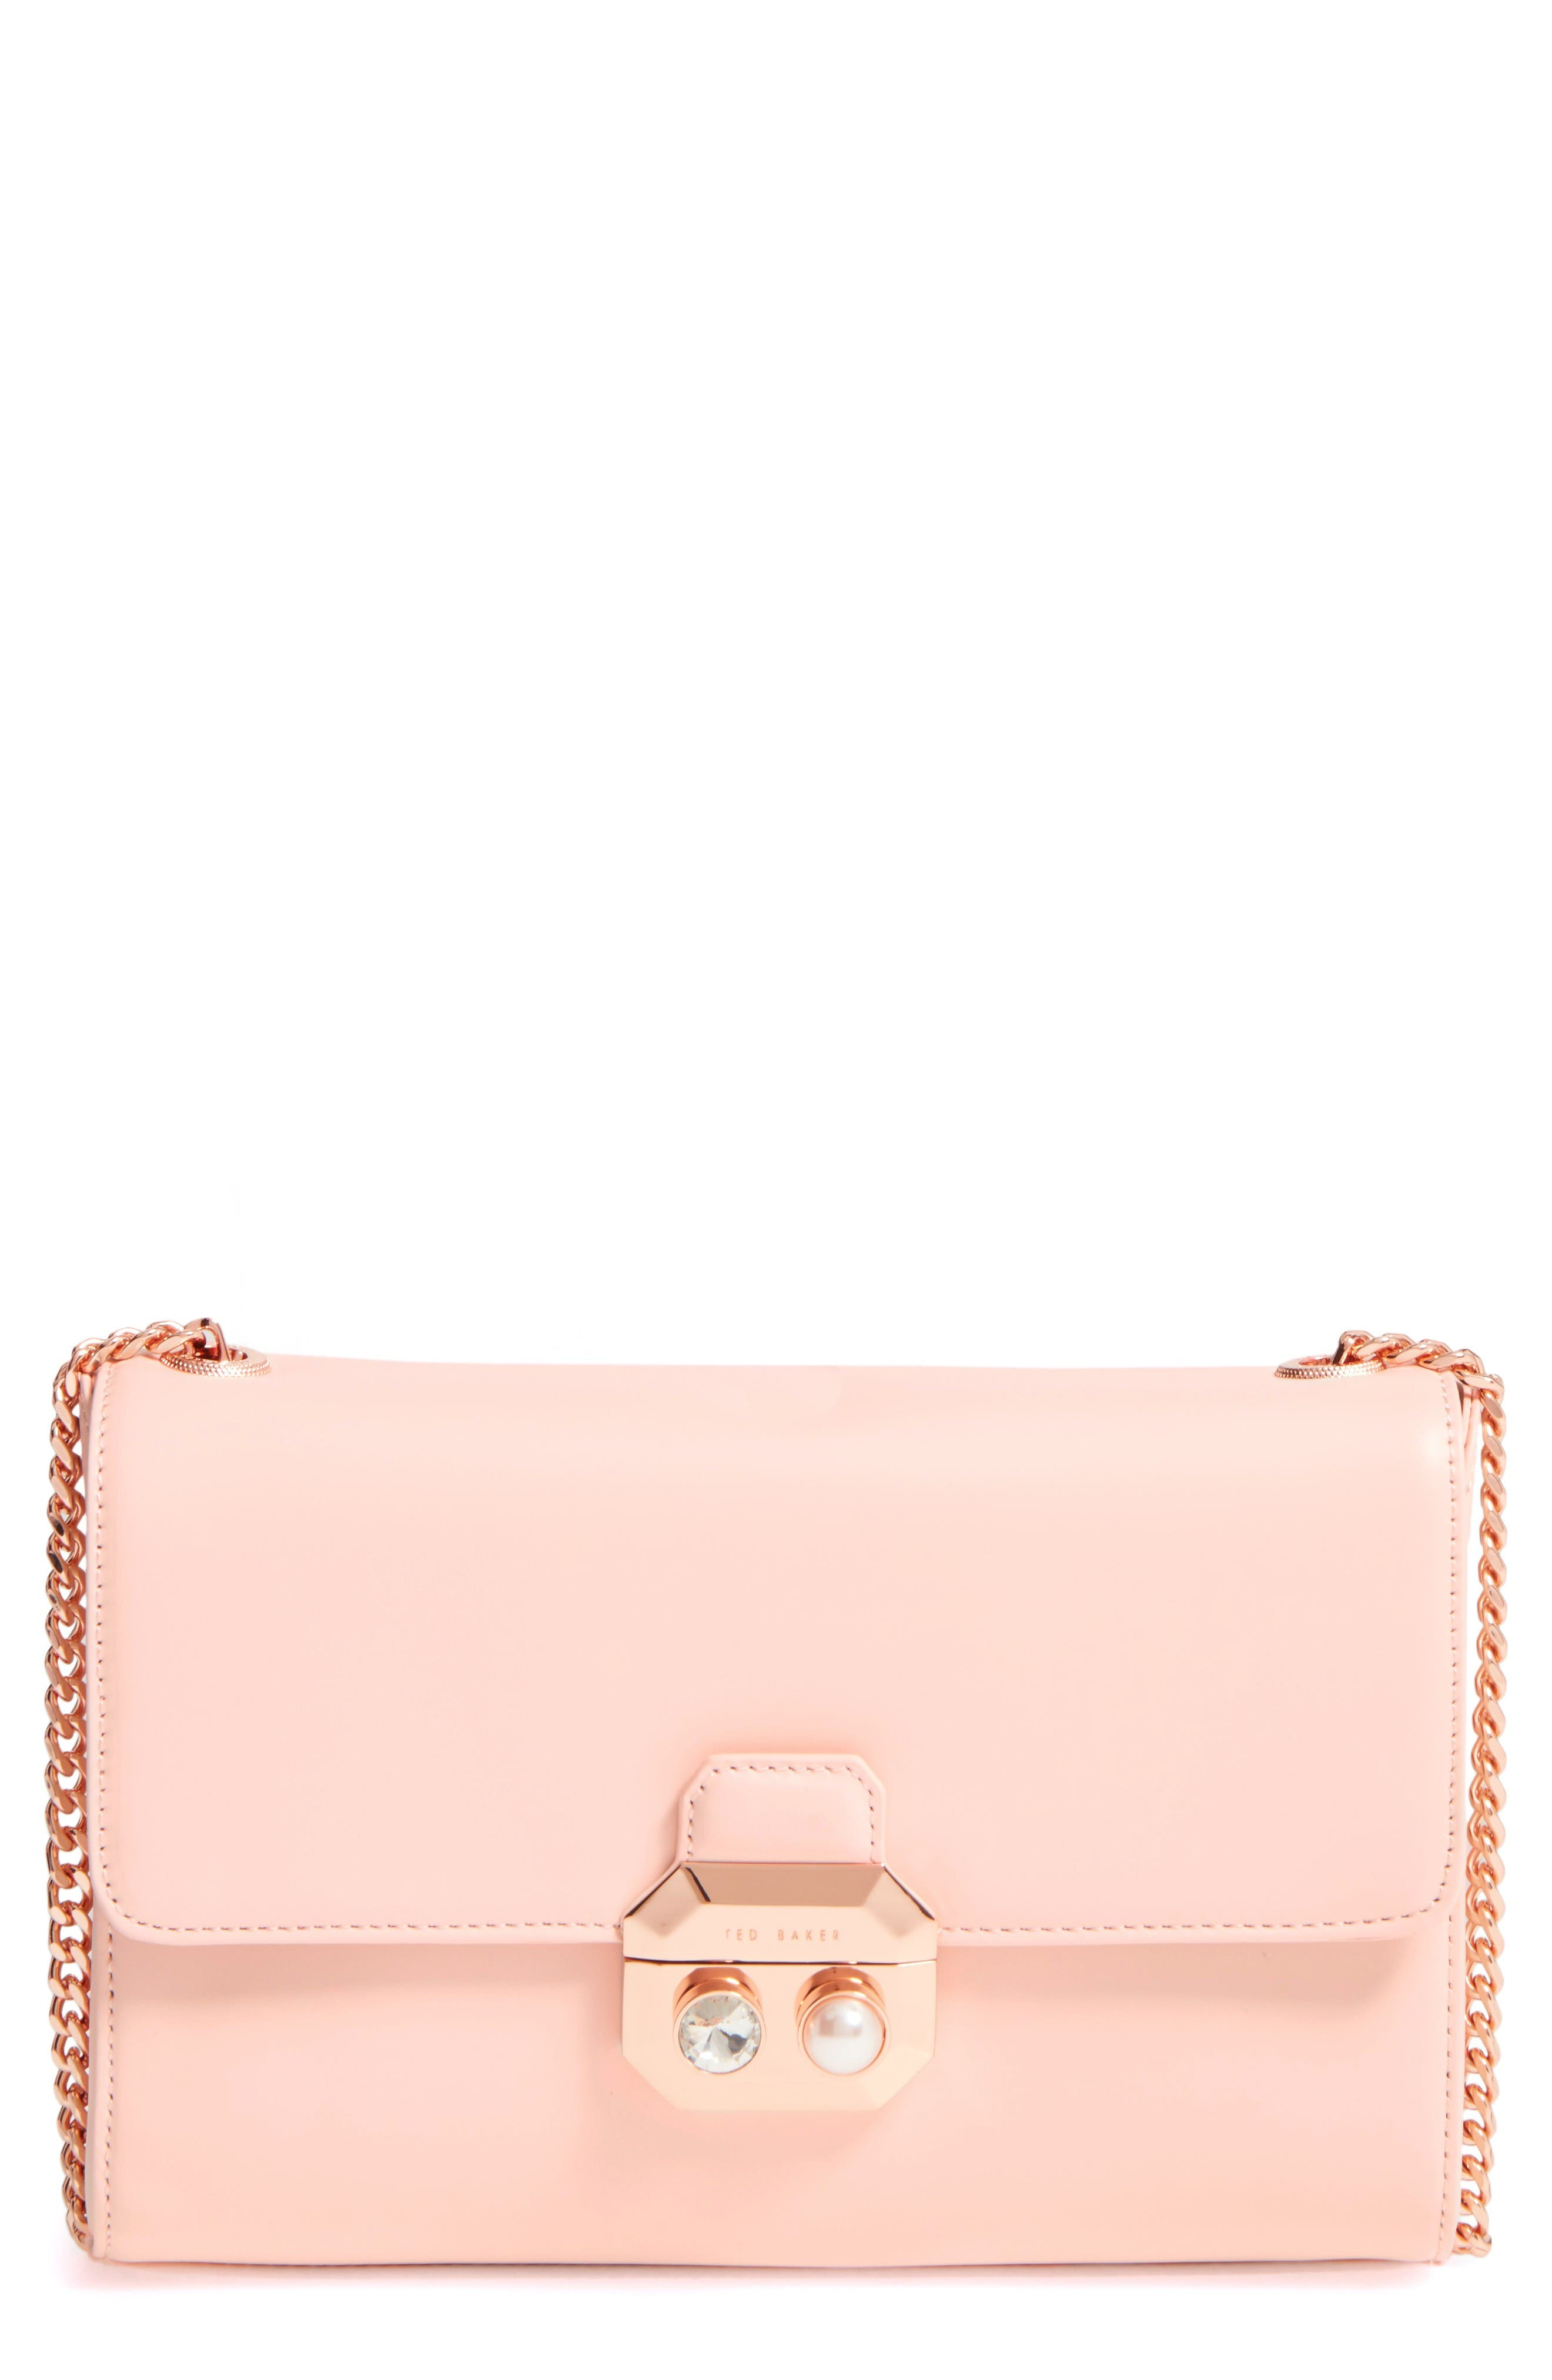 Alternate Image 1 Selected - Ted Baker London Leather Crossbody Bag